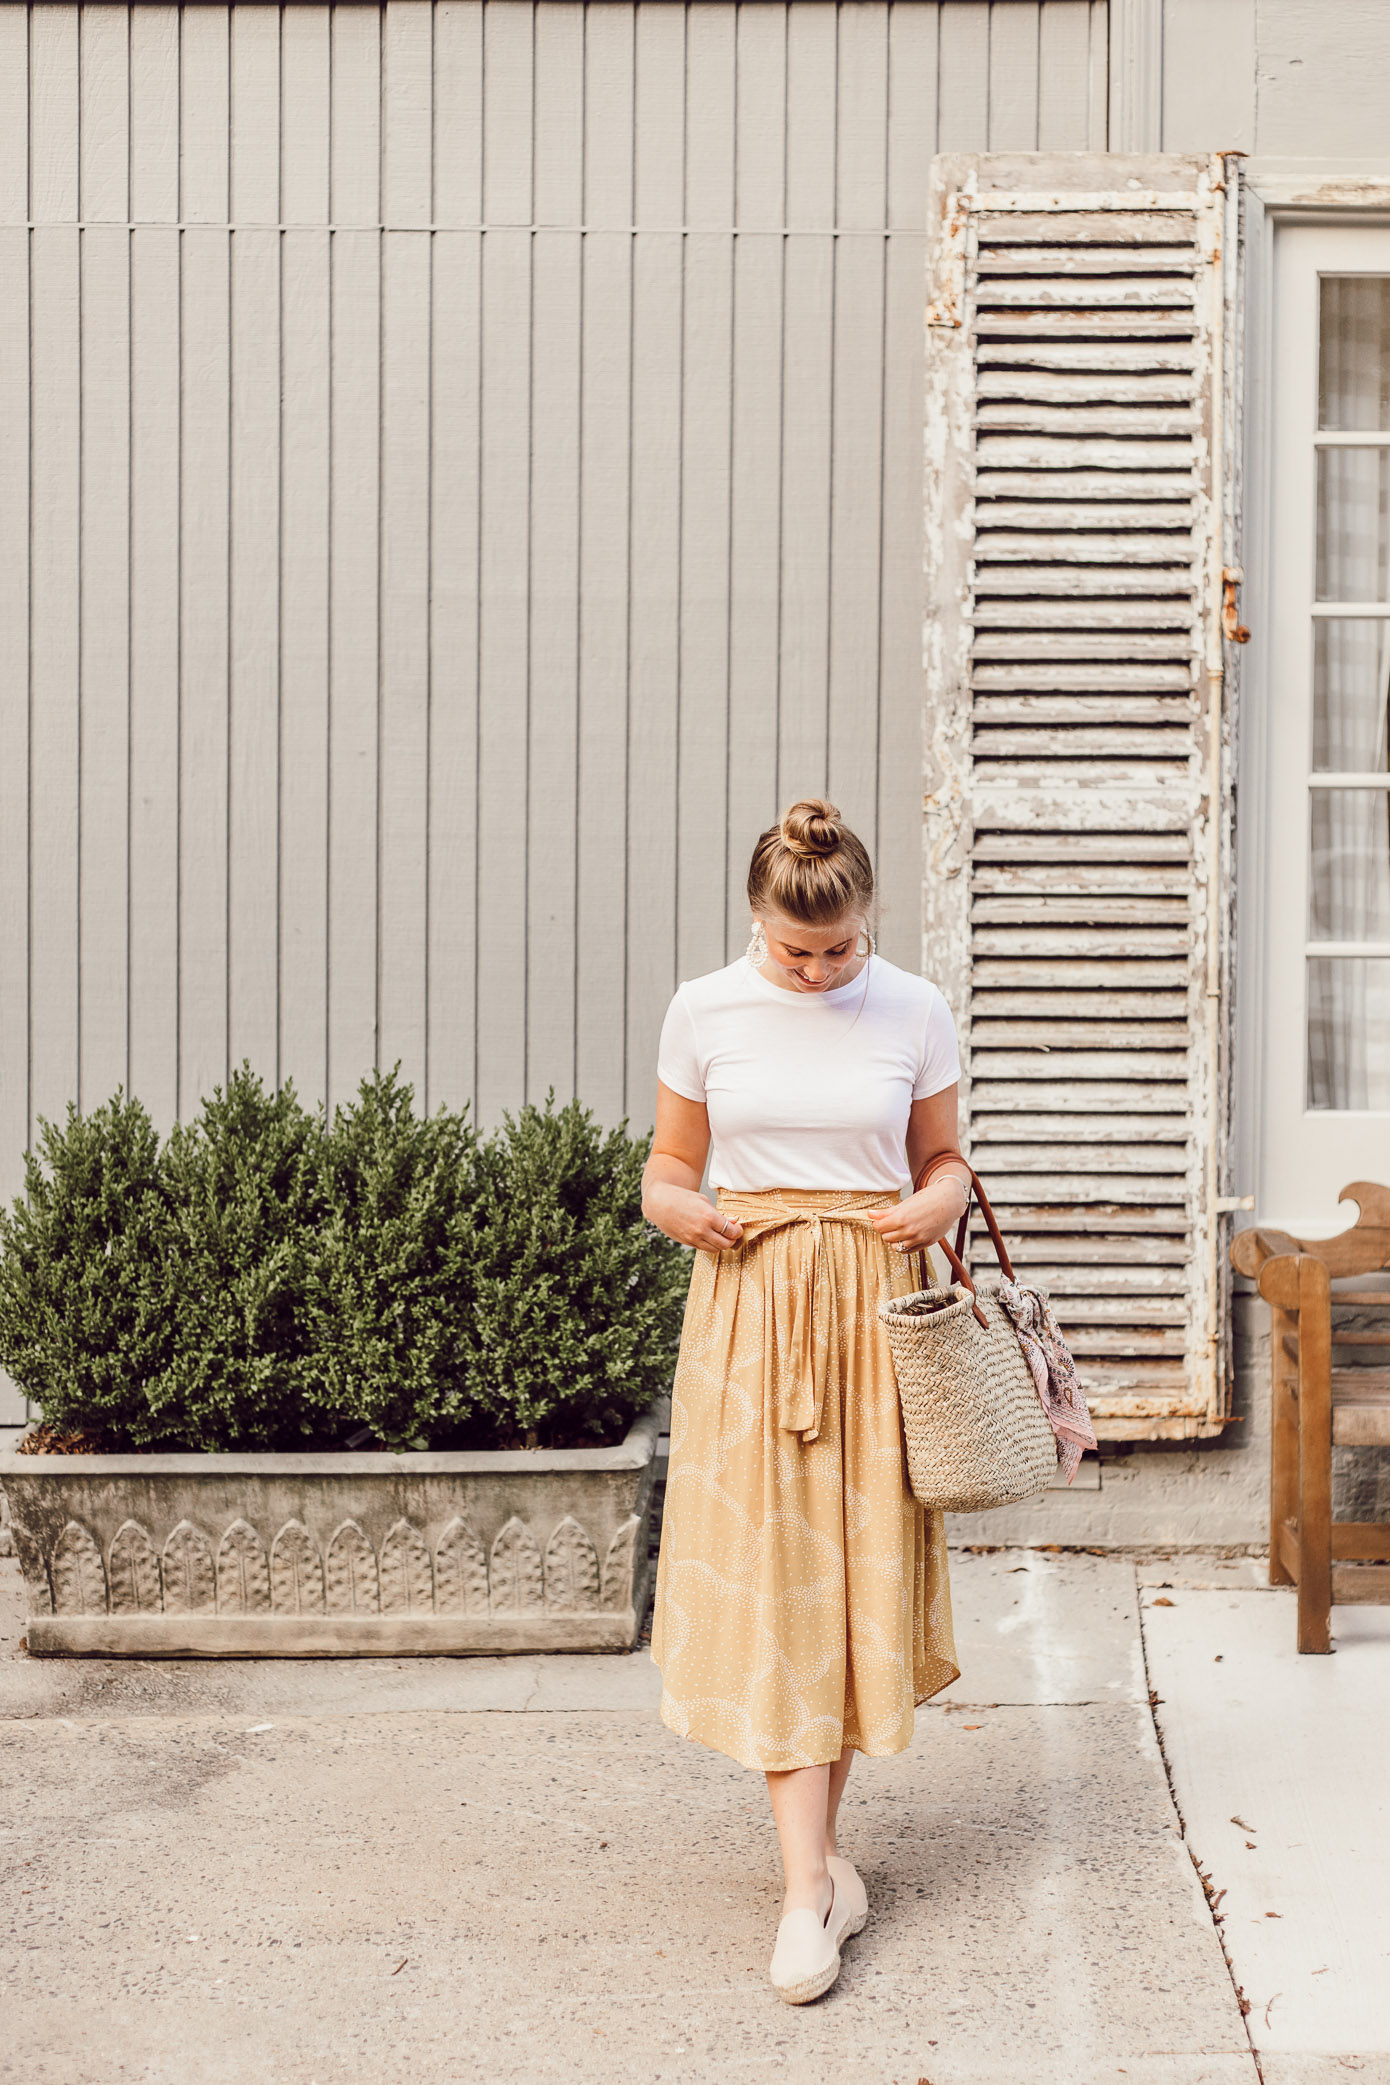 Step Out of Your Color Comfort Zone | Casual Summer Style | Basic White Tee and Yellow Midi Skirt styled on Louella Reese